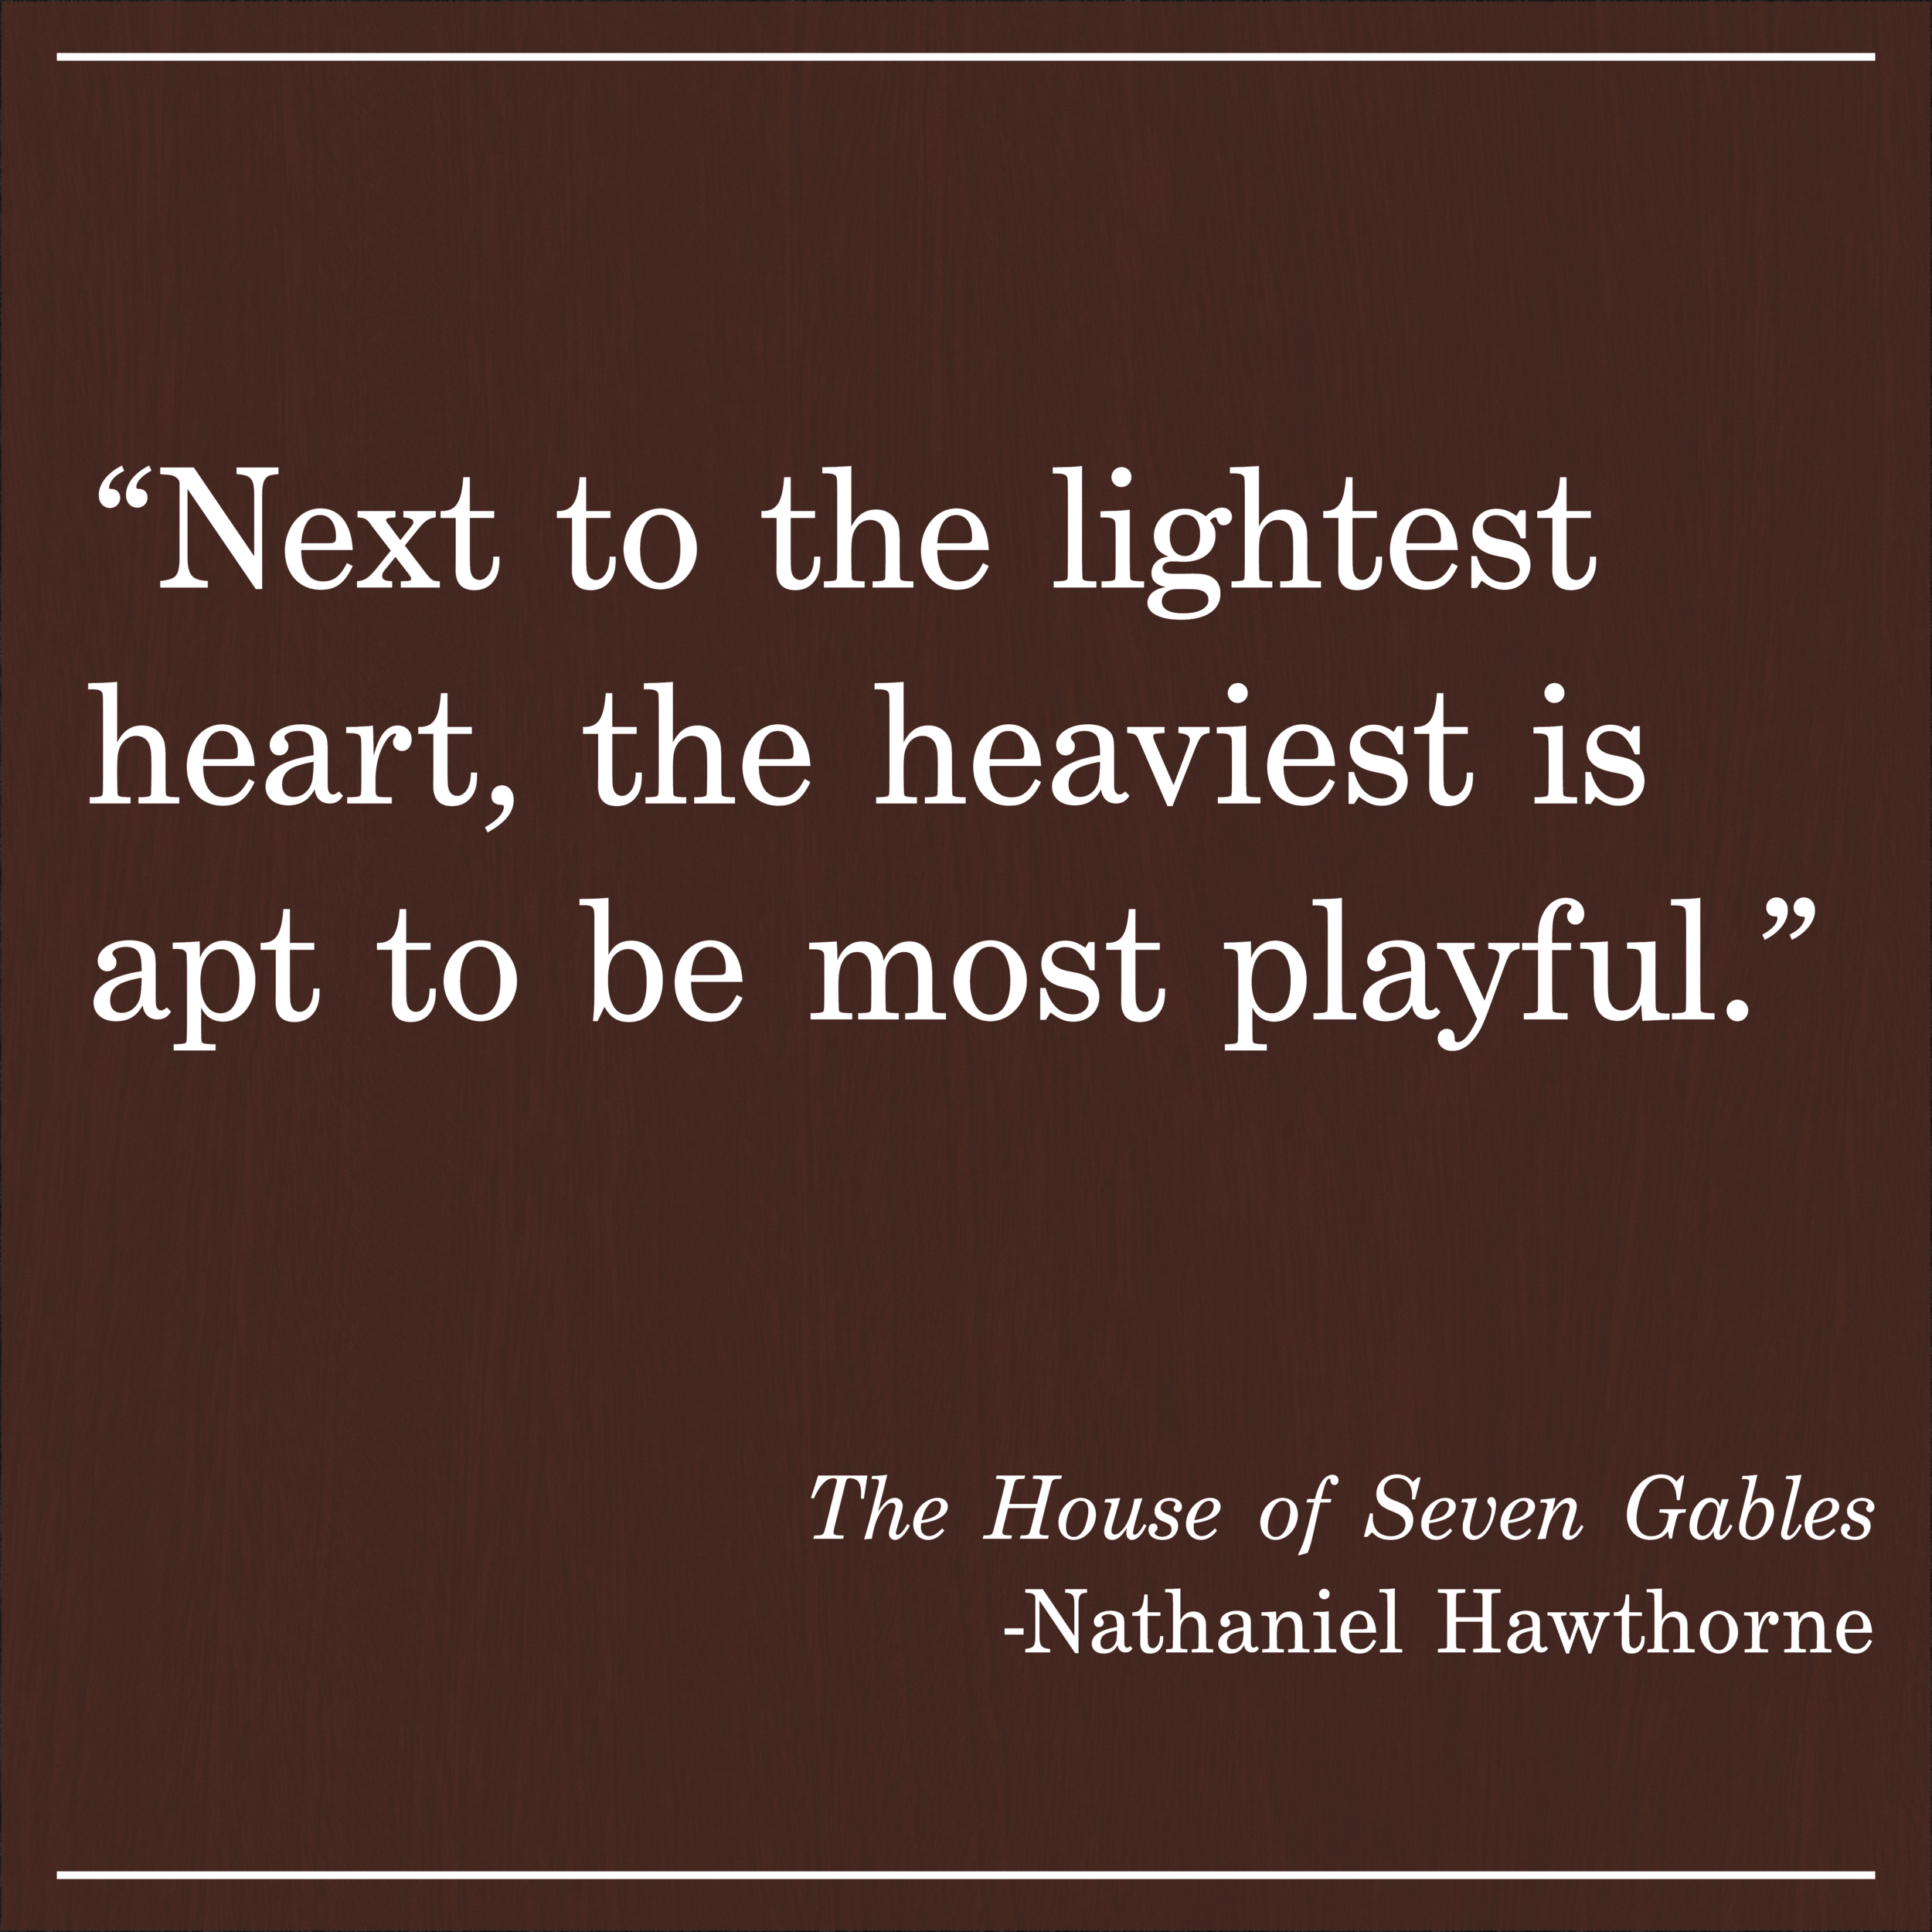 Daily Quote The House of Seven Gables by Nathaniel Hawthorne